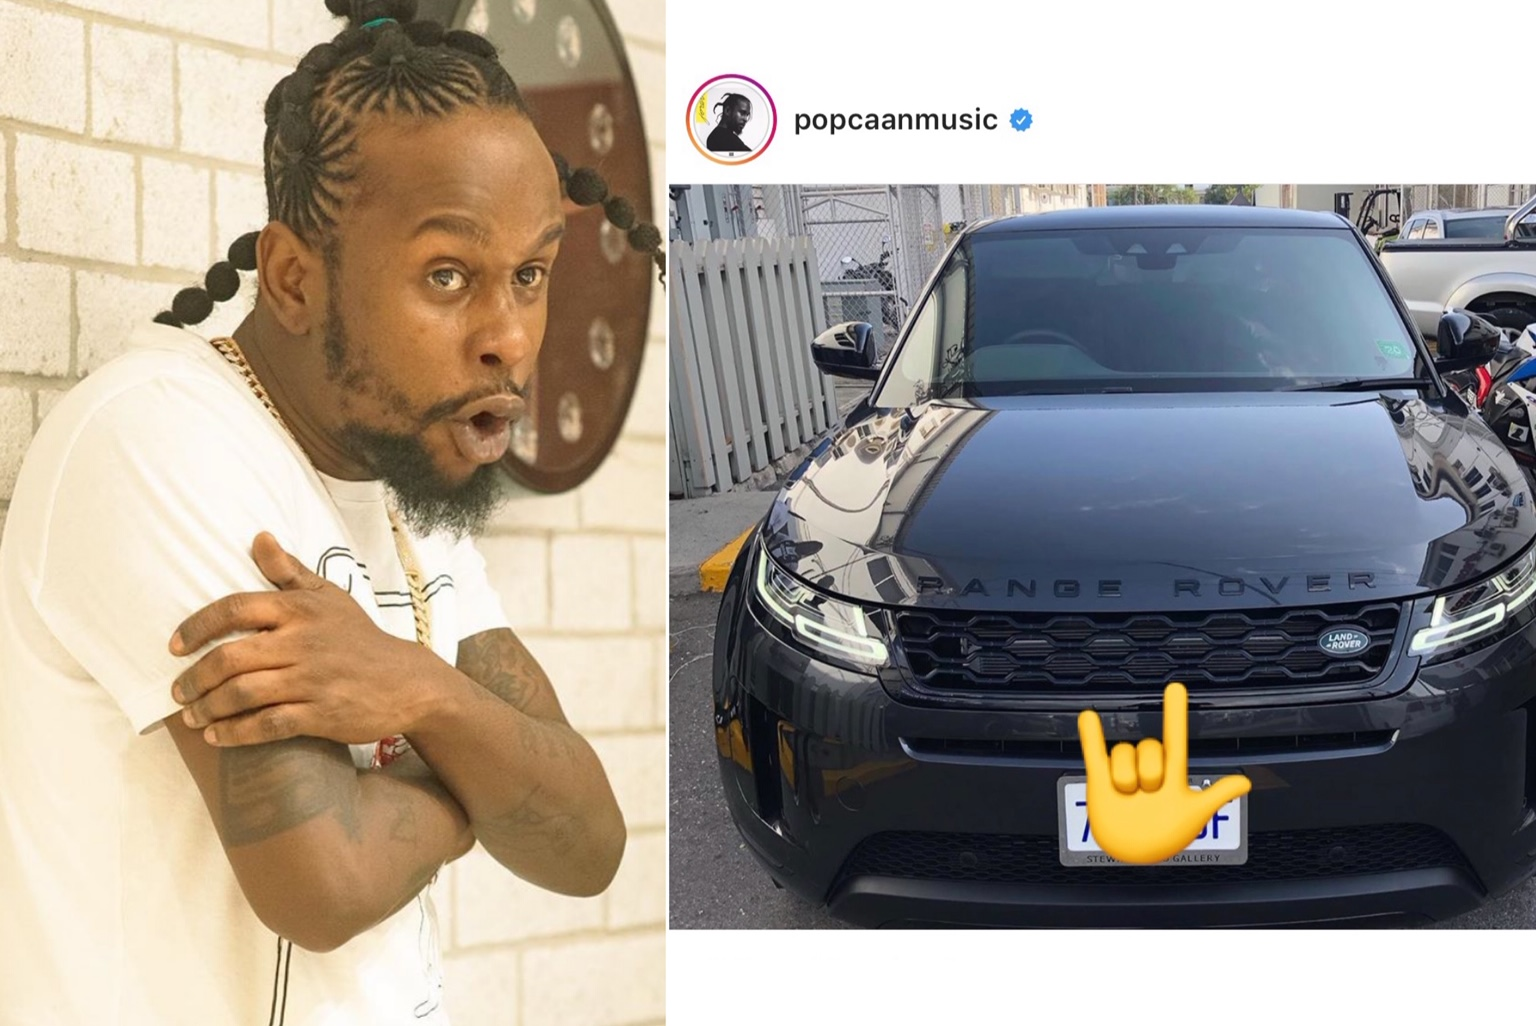 Popcaan Buys 2020 Range Rover To Celebrate Successful